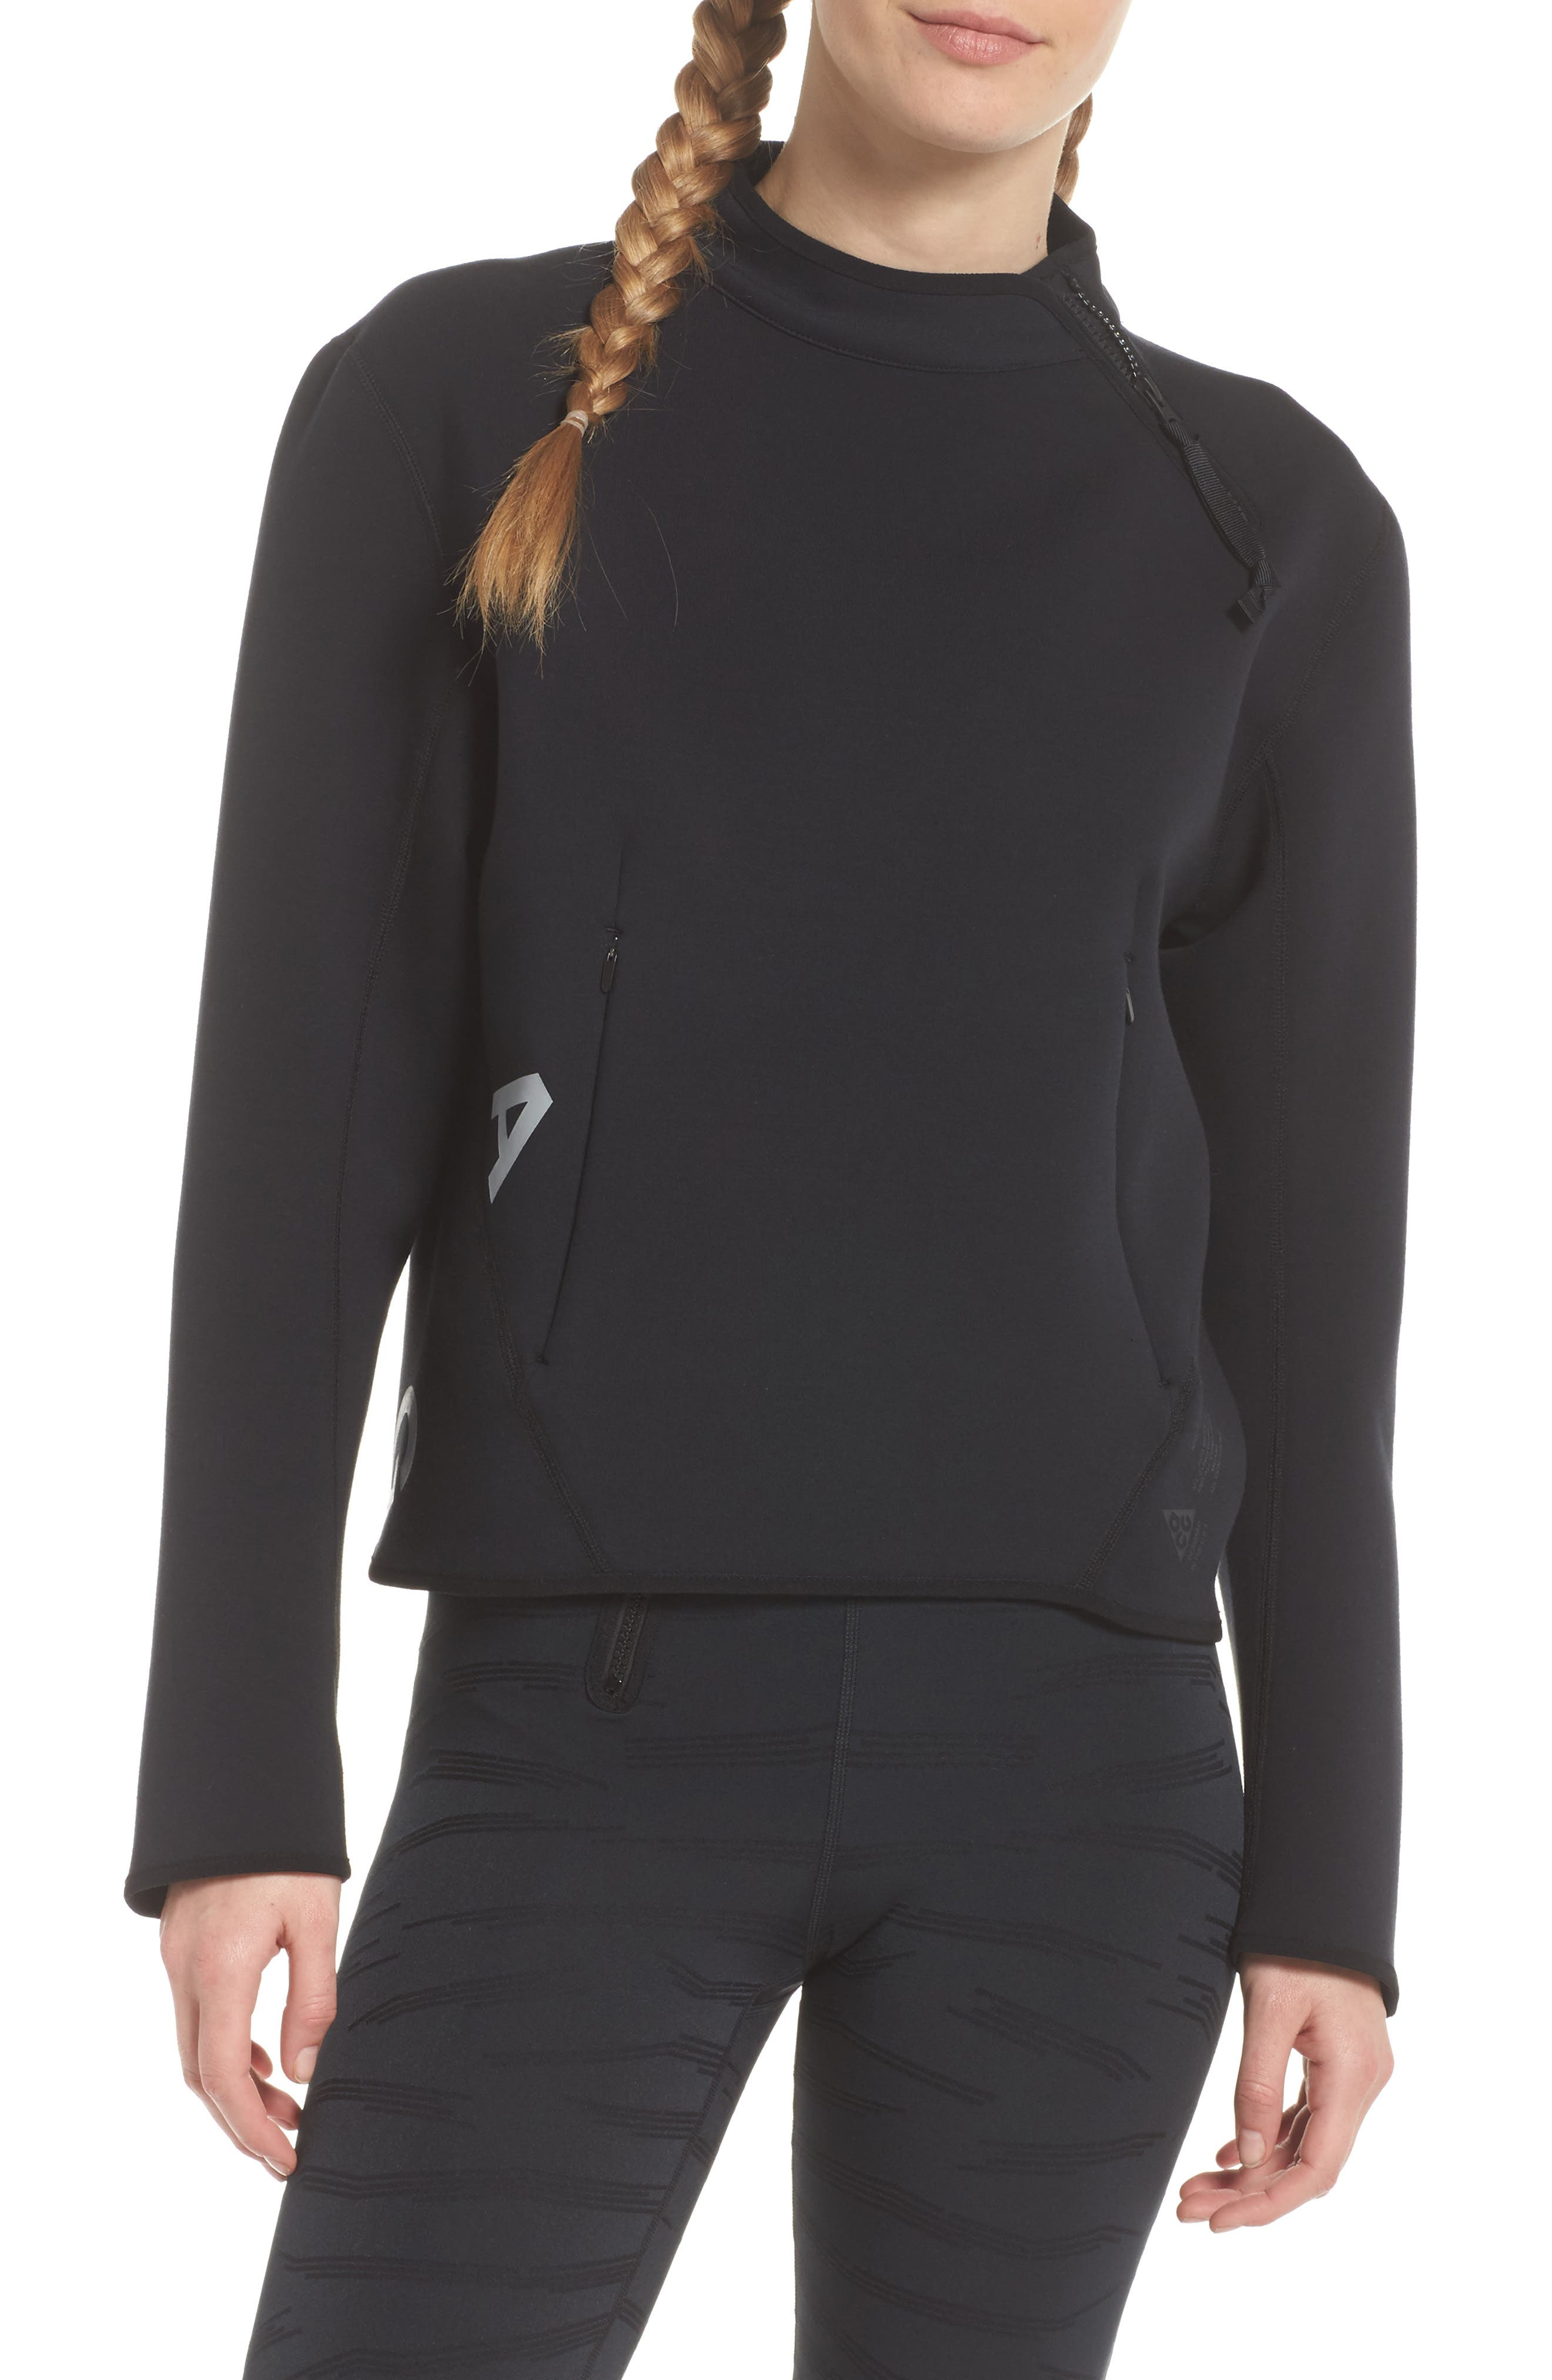 NikeLab ACG Fleece Women's Crewneck Top,                             Main thumbnail 1, color,                             010